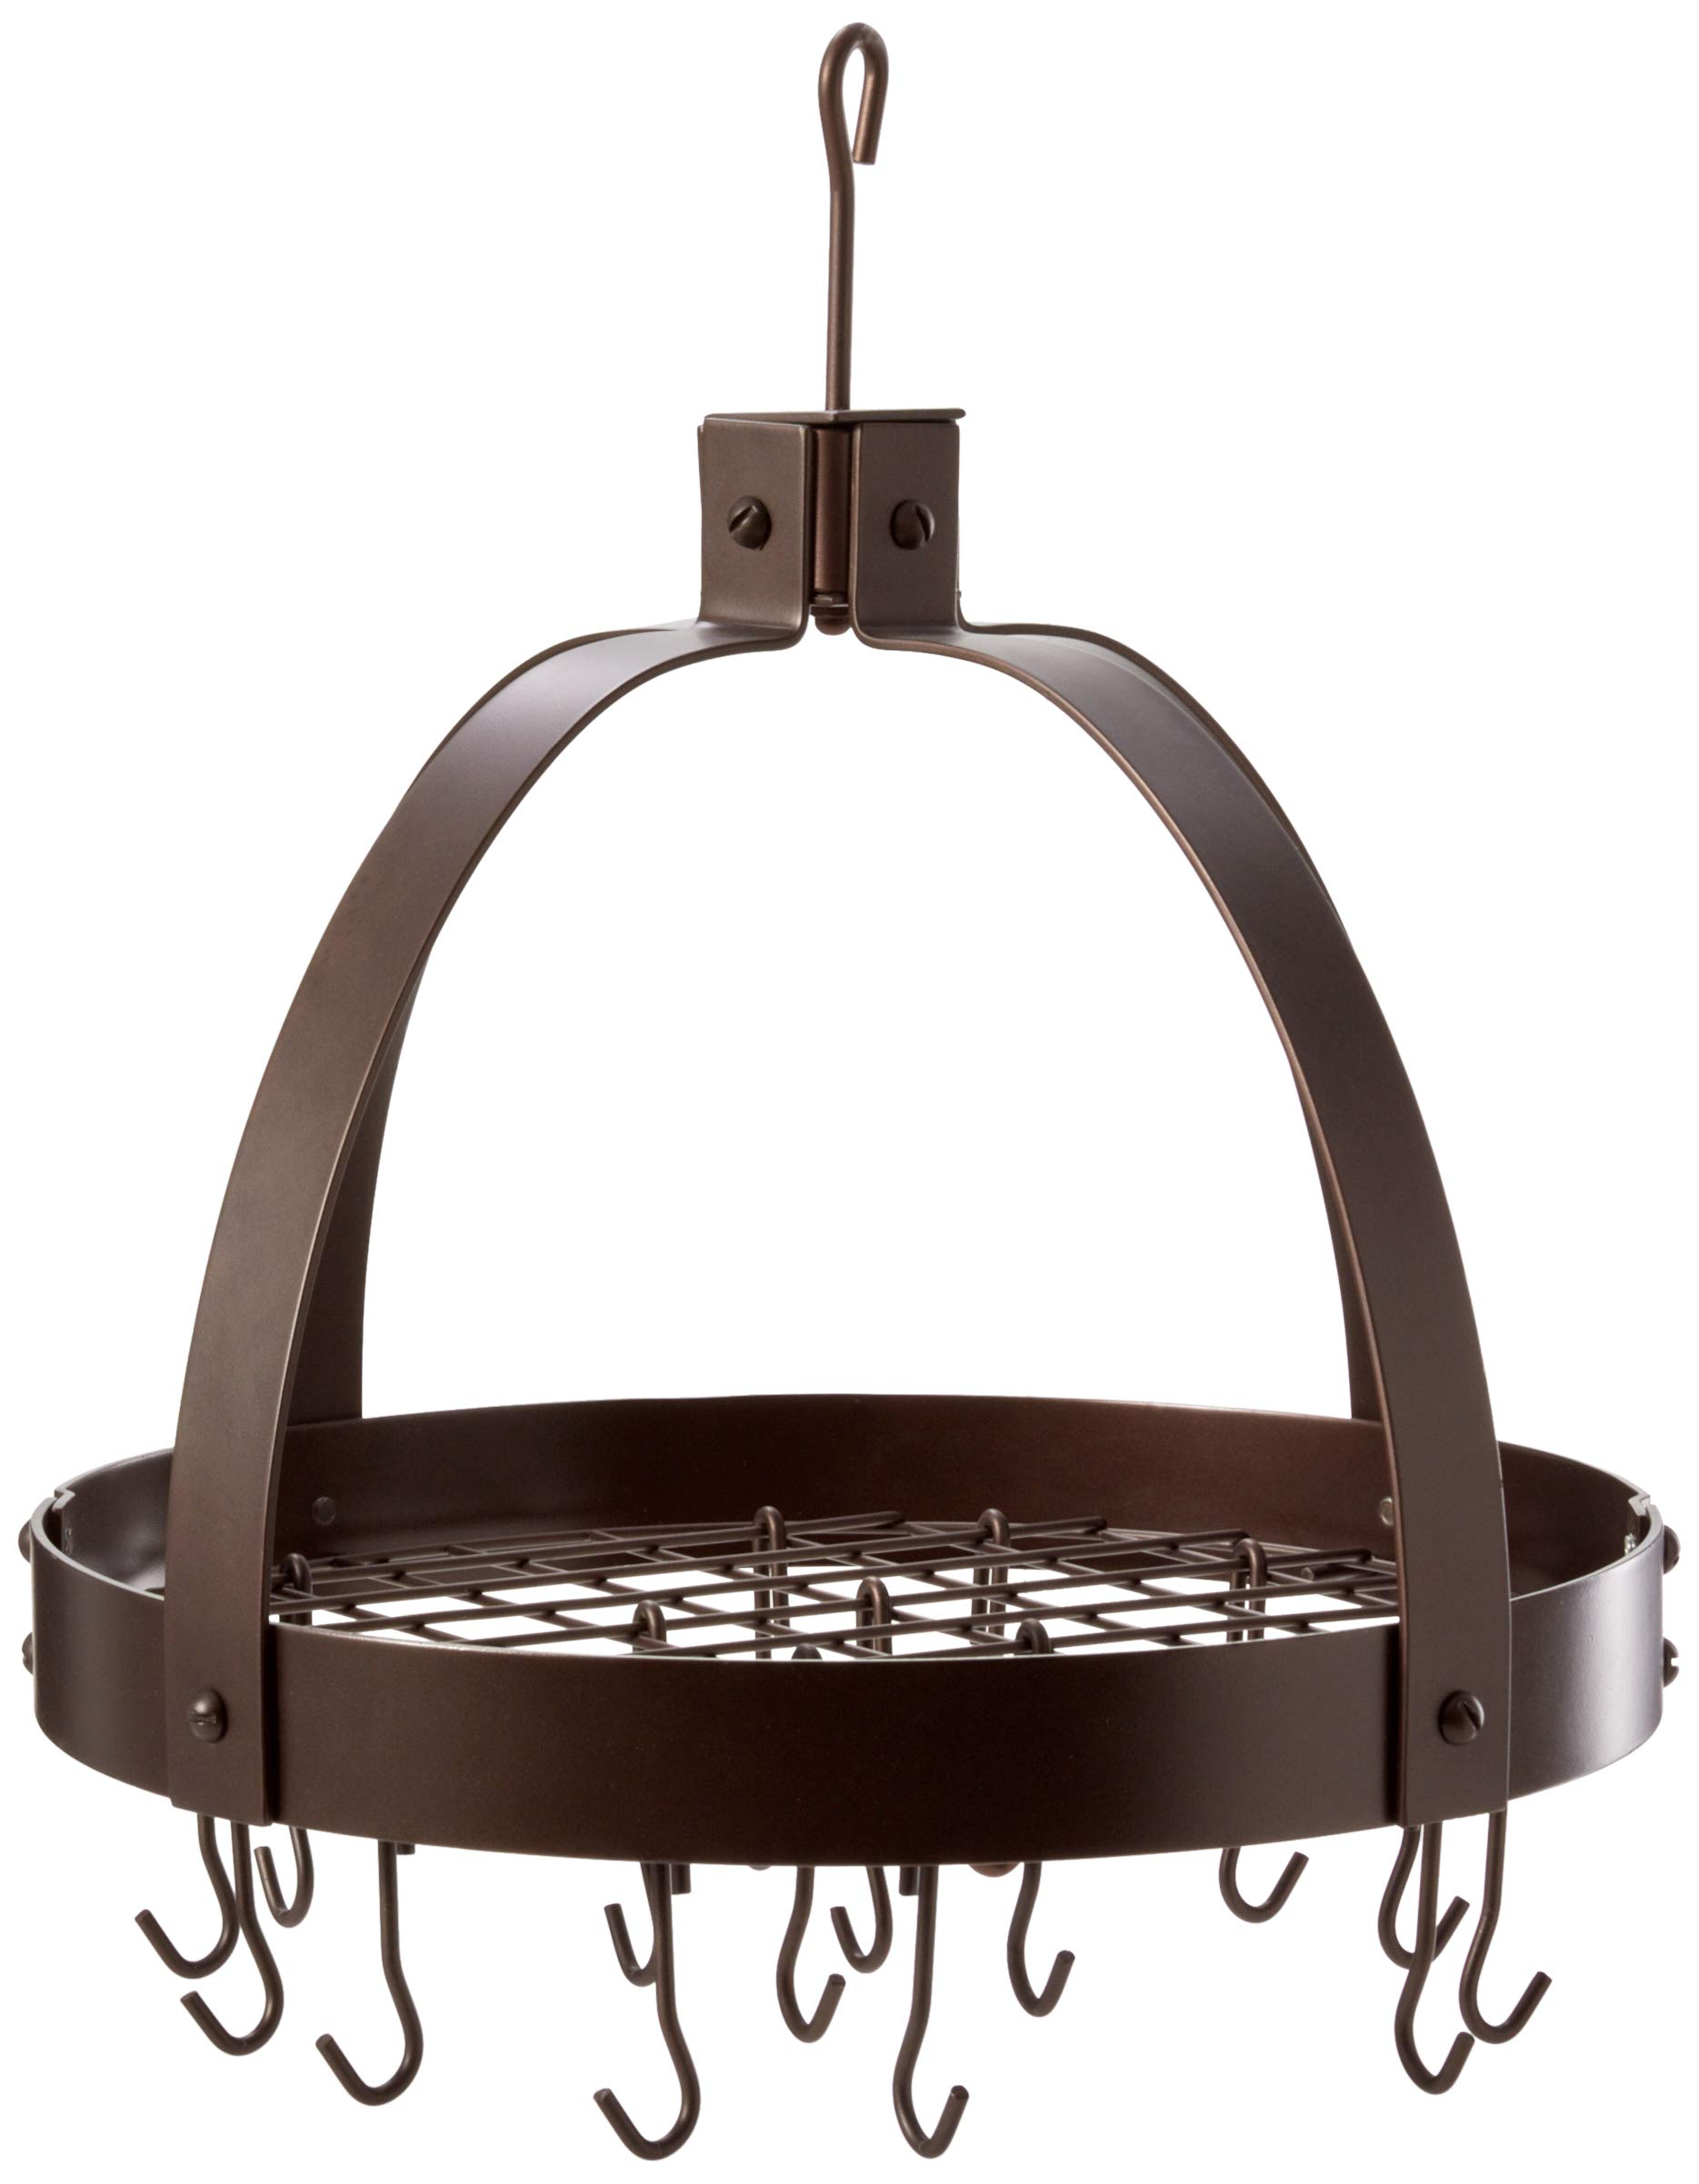 Old Dutch Dome Pot Rack with 16 Hooks, Oiled Bronze, 20'' x 15.25'' x 21''